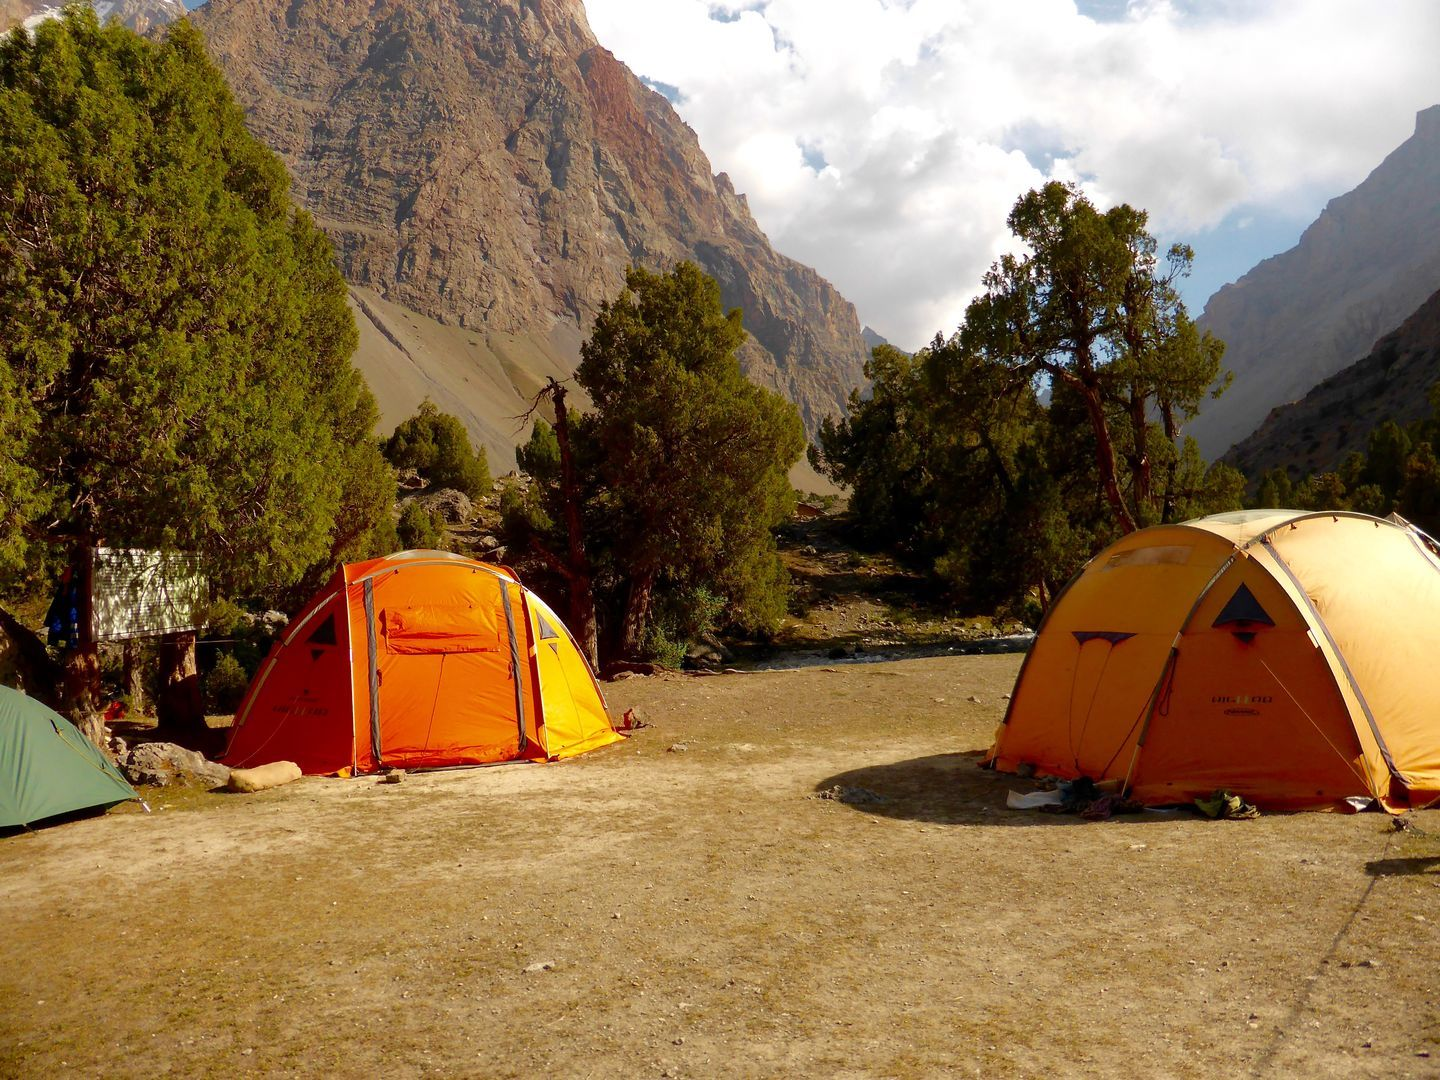 Camping in Fann mountains, trekking Tour Tajikistan